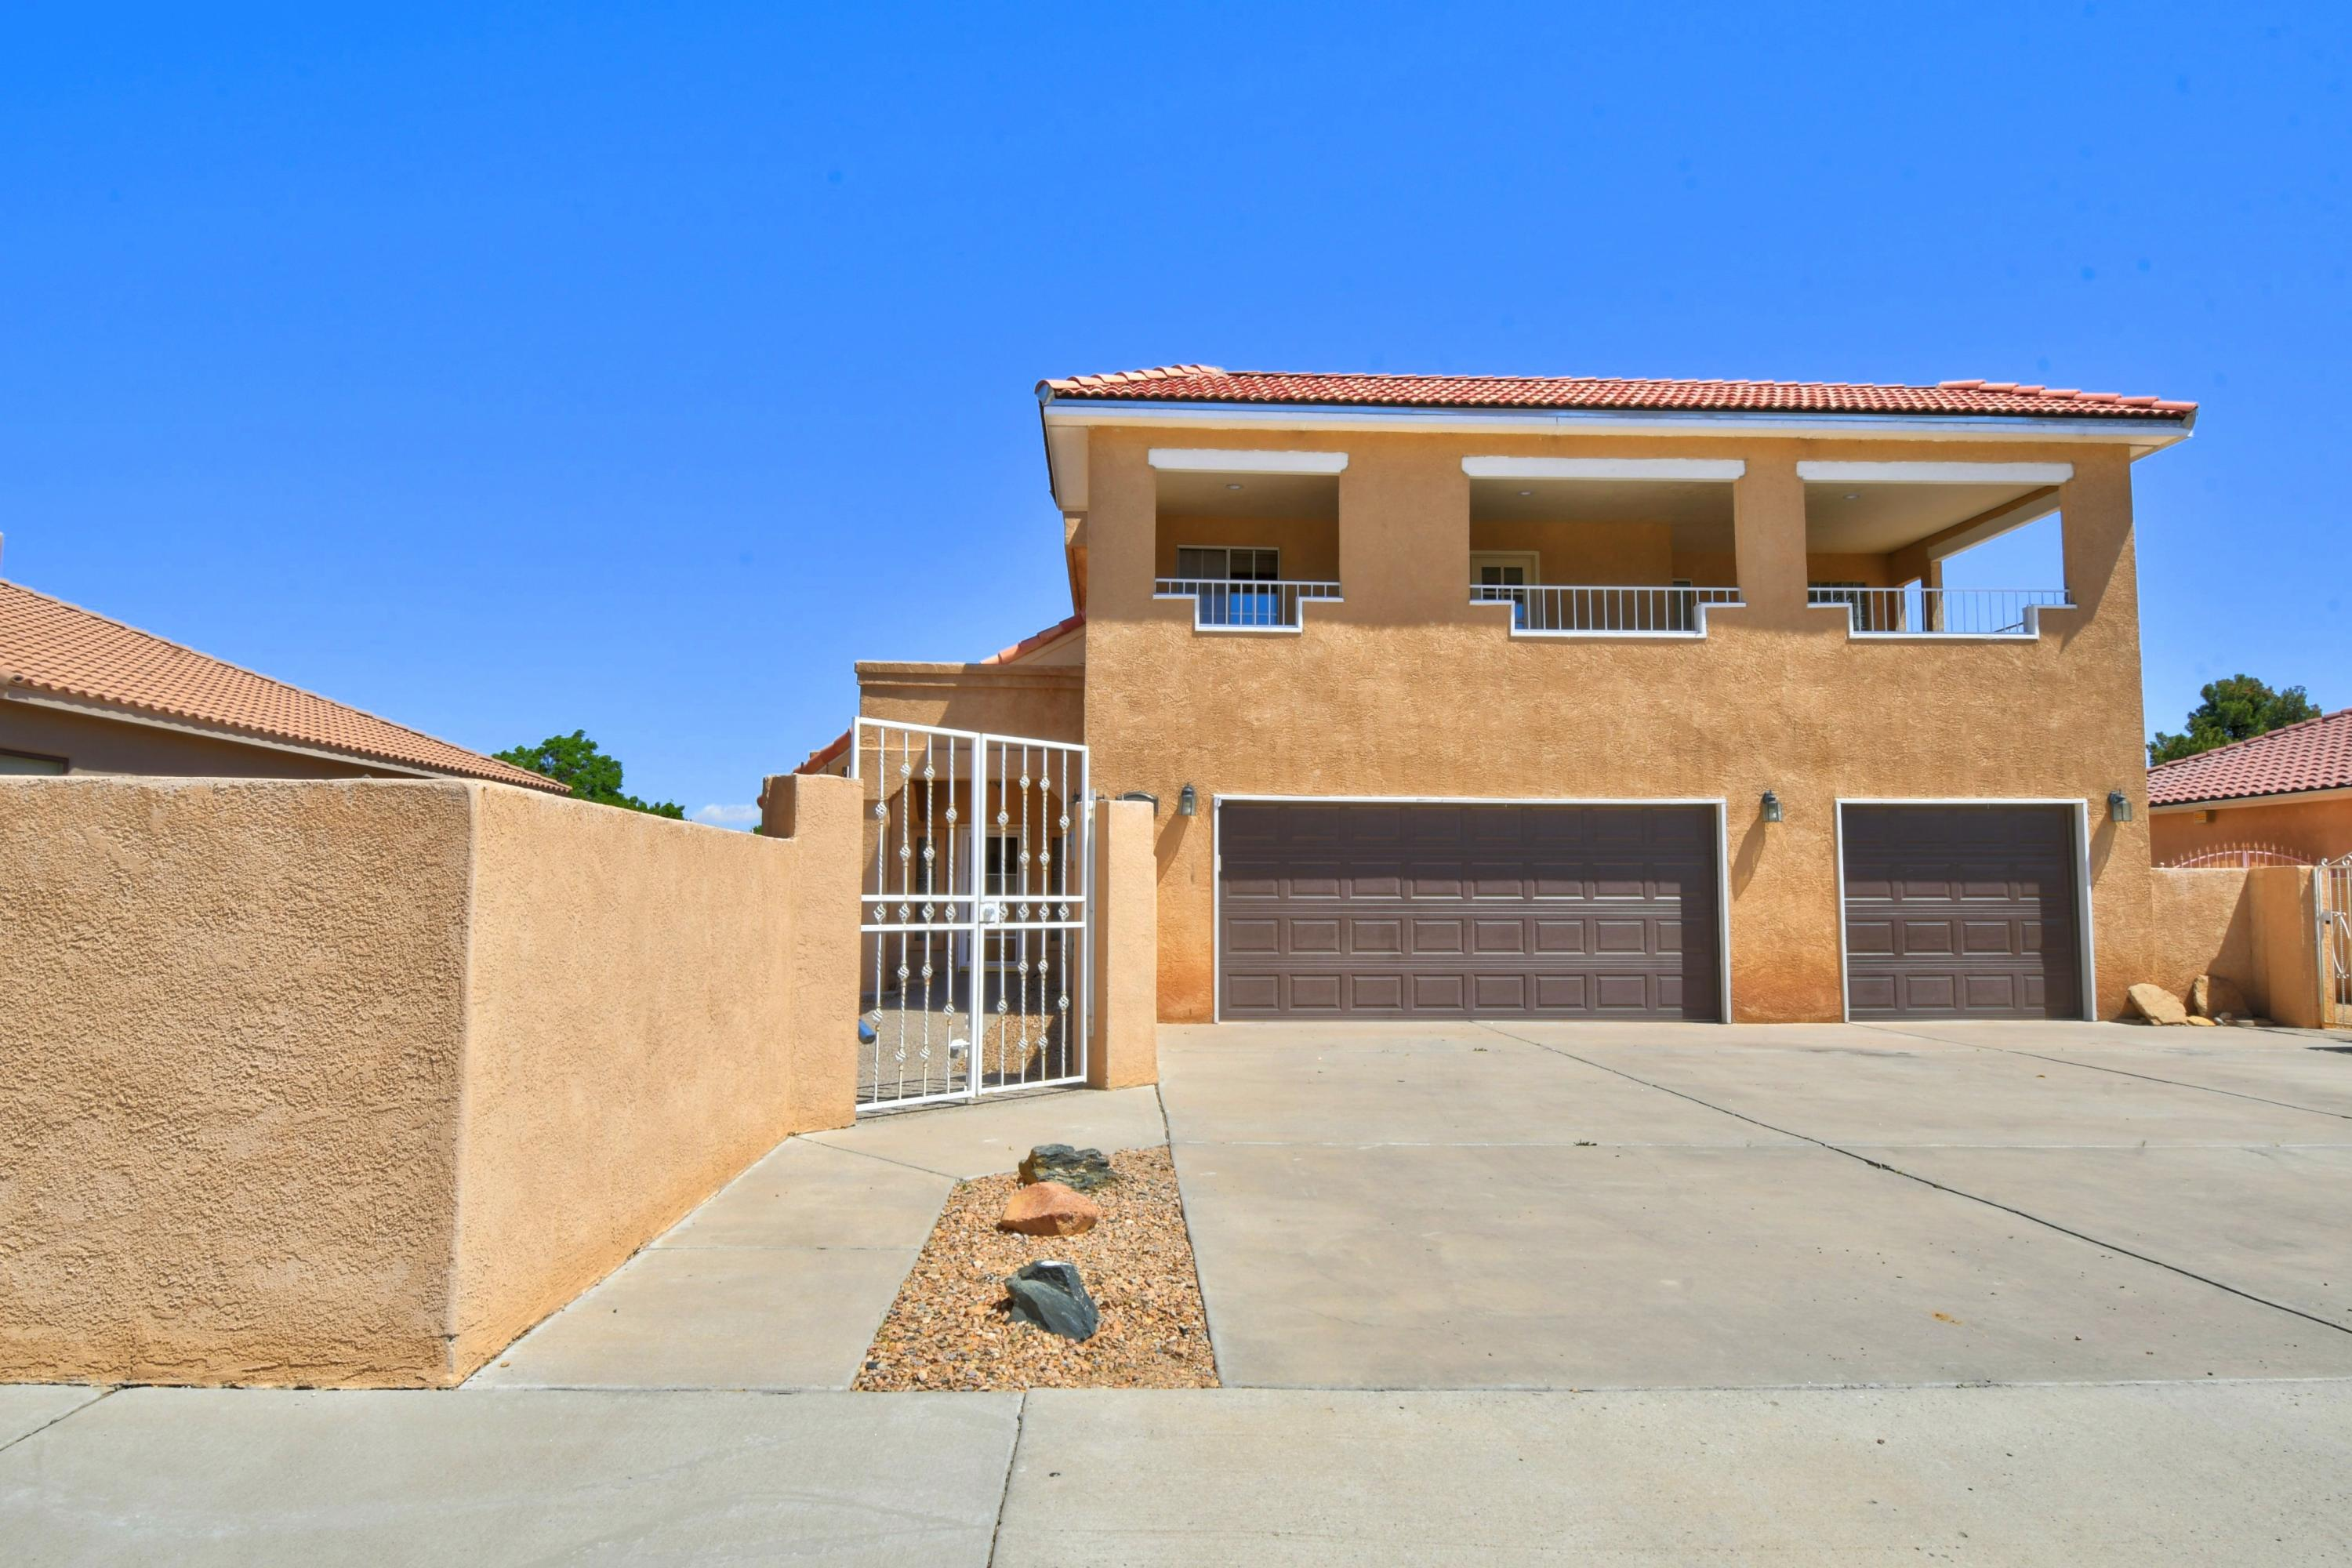 One owner home.  Built by the Owner.  MANY upgrades throughout the home.  Rare find with a basement.  Large scale RV parking behind a gate.  This home has MANY custom finishes that you won't find in an average home.  Pride of ownership and creation.